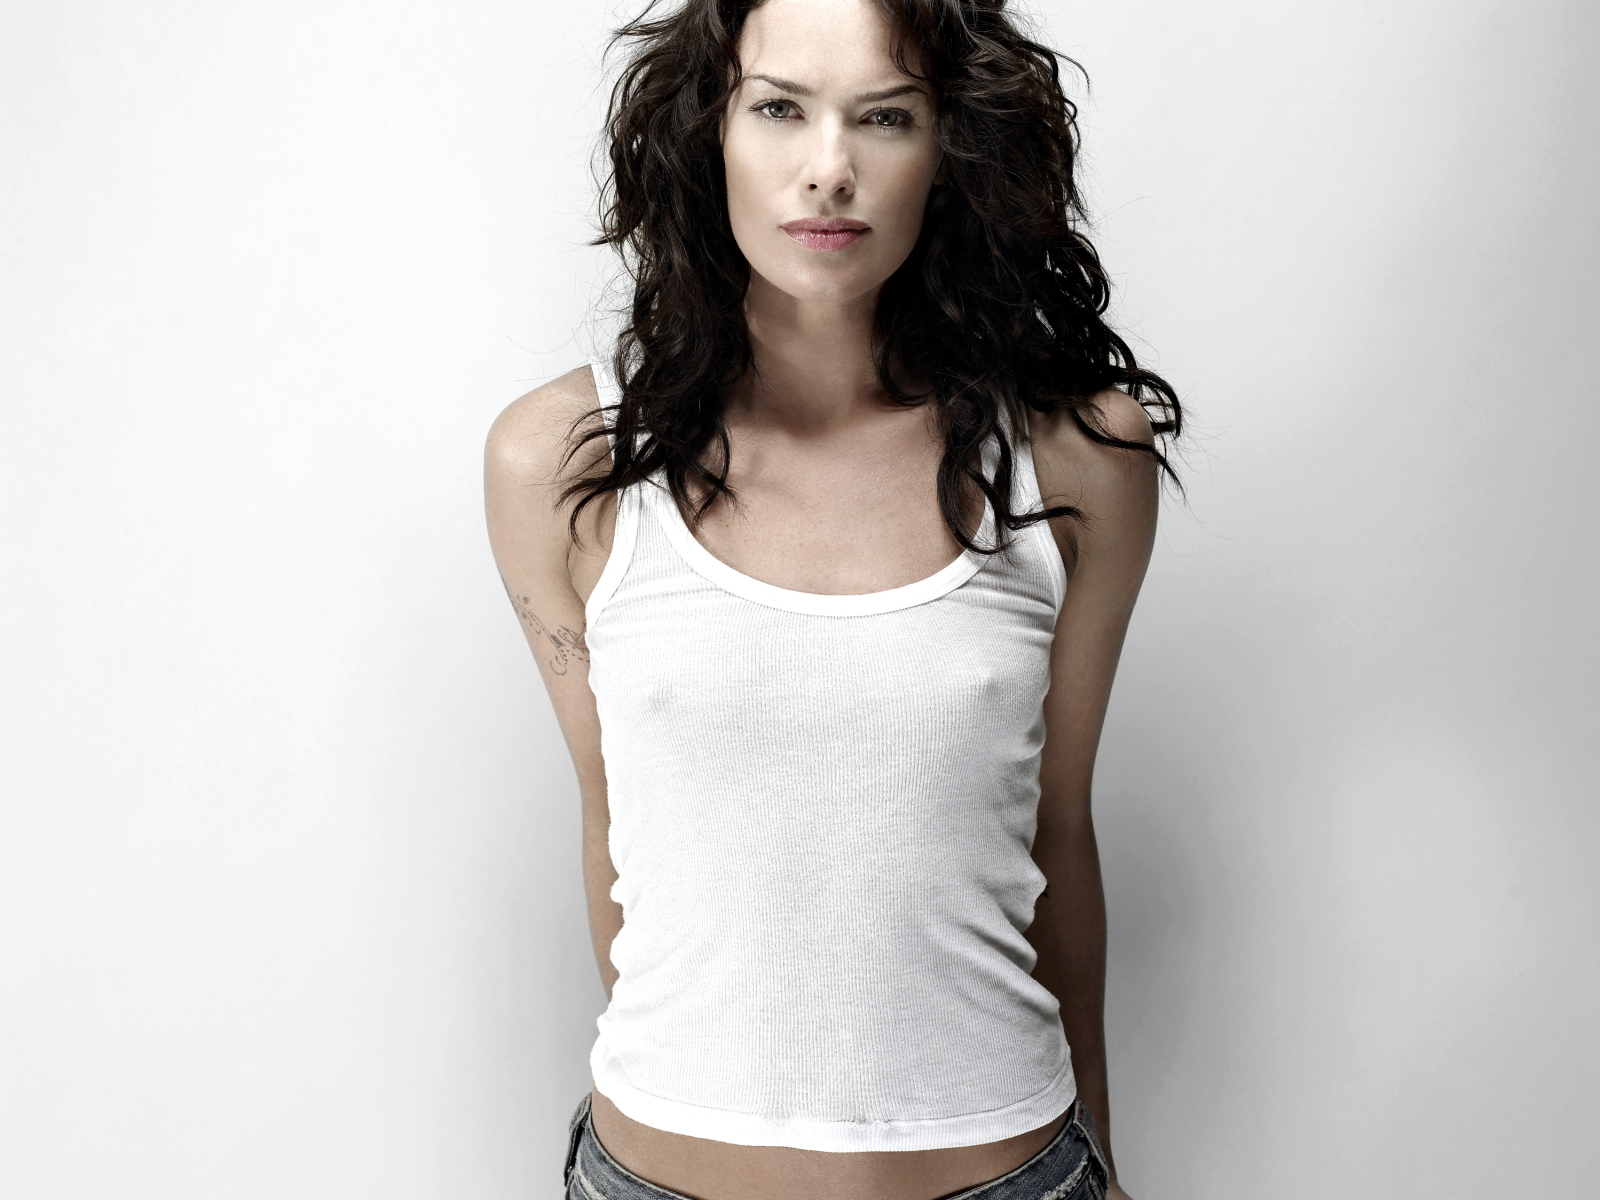 Sexy Lena Headey Wallpaper